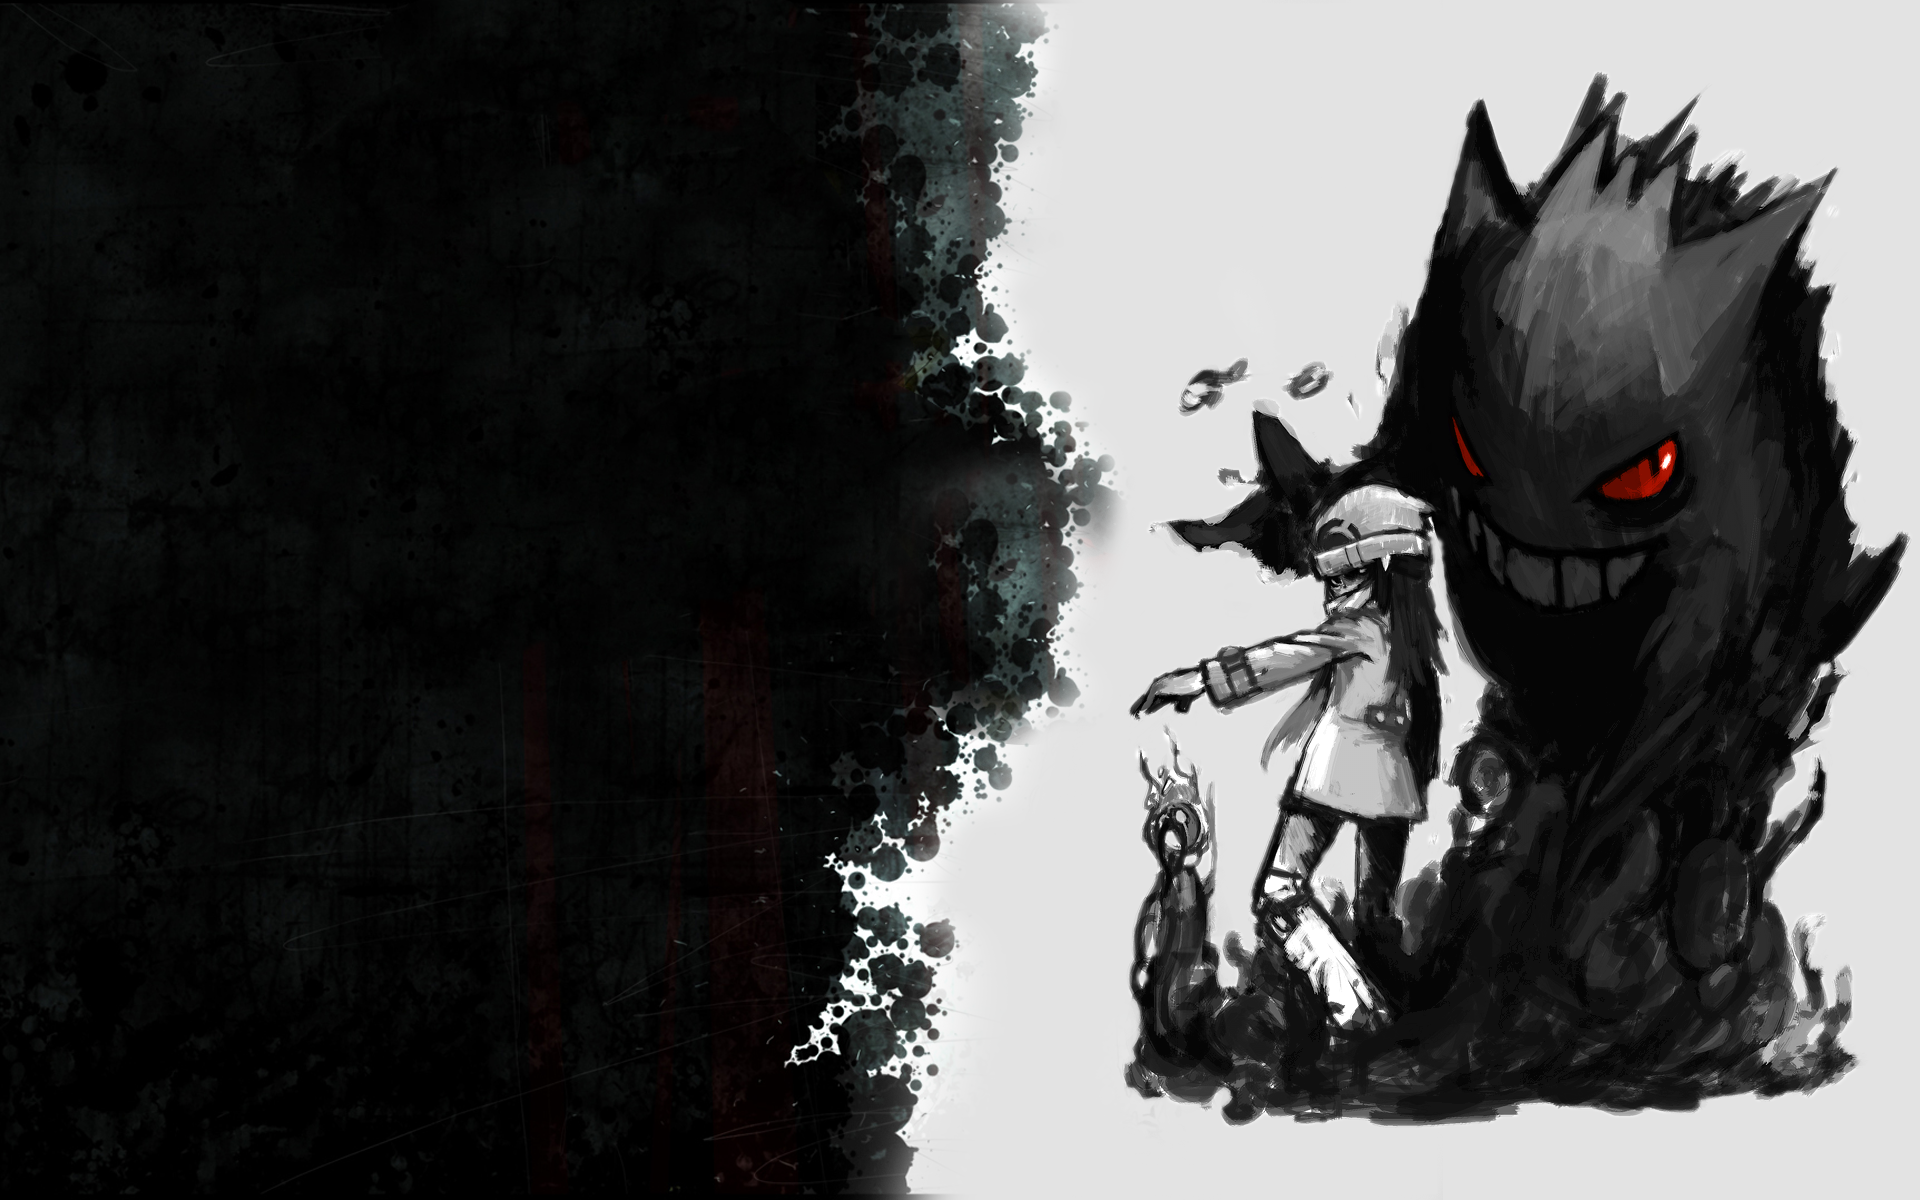 Wallpaper for your desktop s wallpaper gengar wallpaper high - Pokemon Gengar Wallpaper 1920x1200 Pokemon Gengar